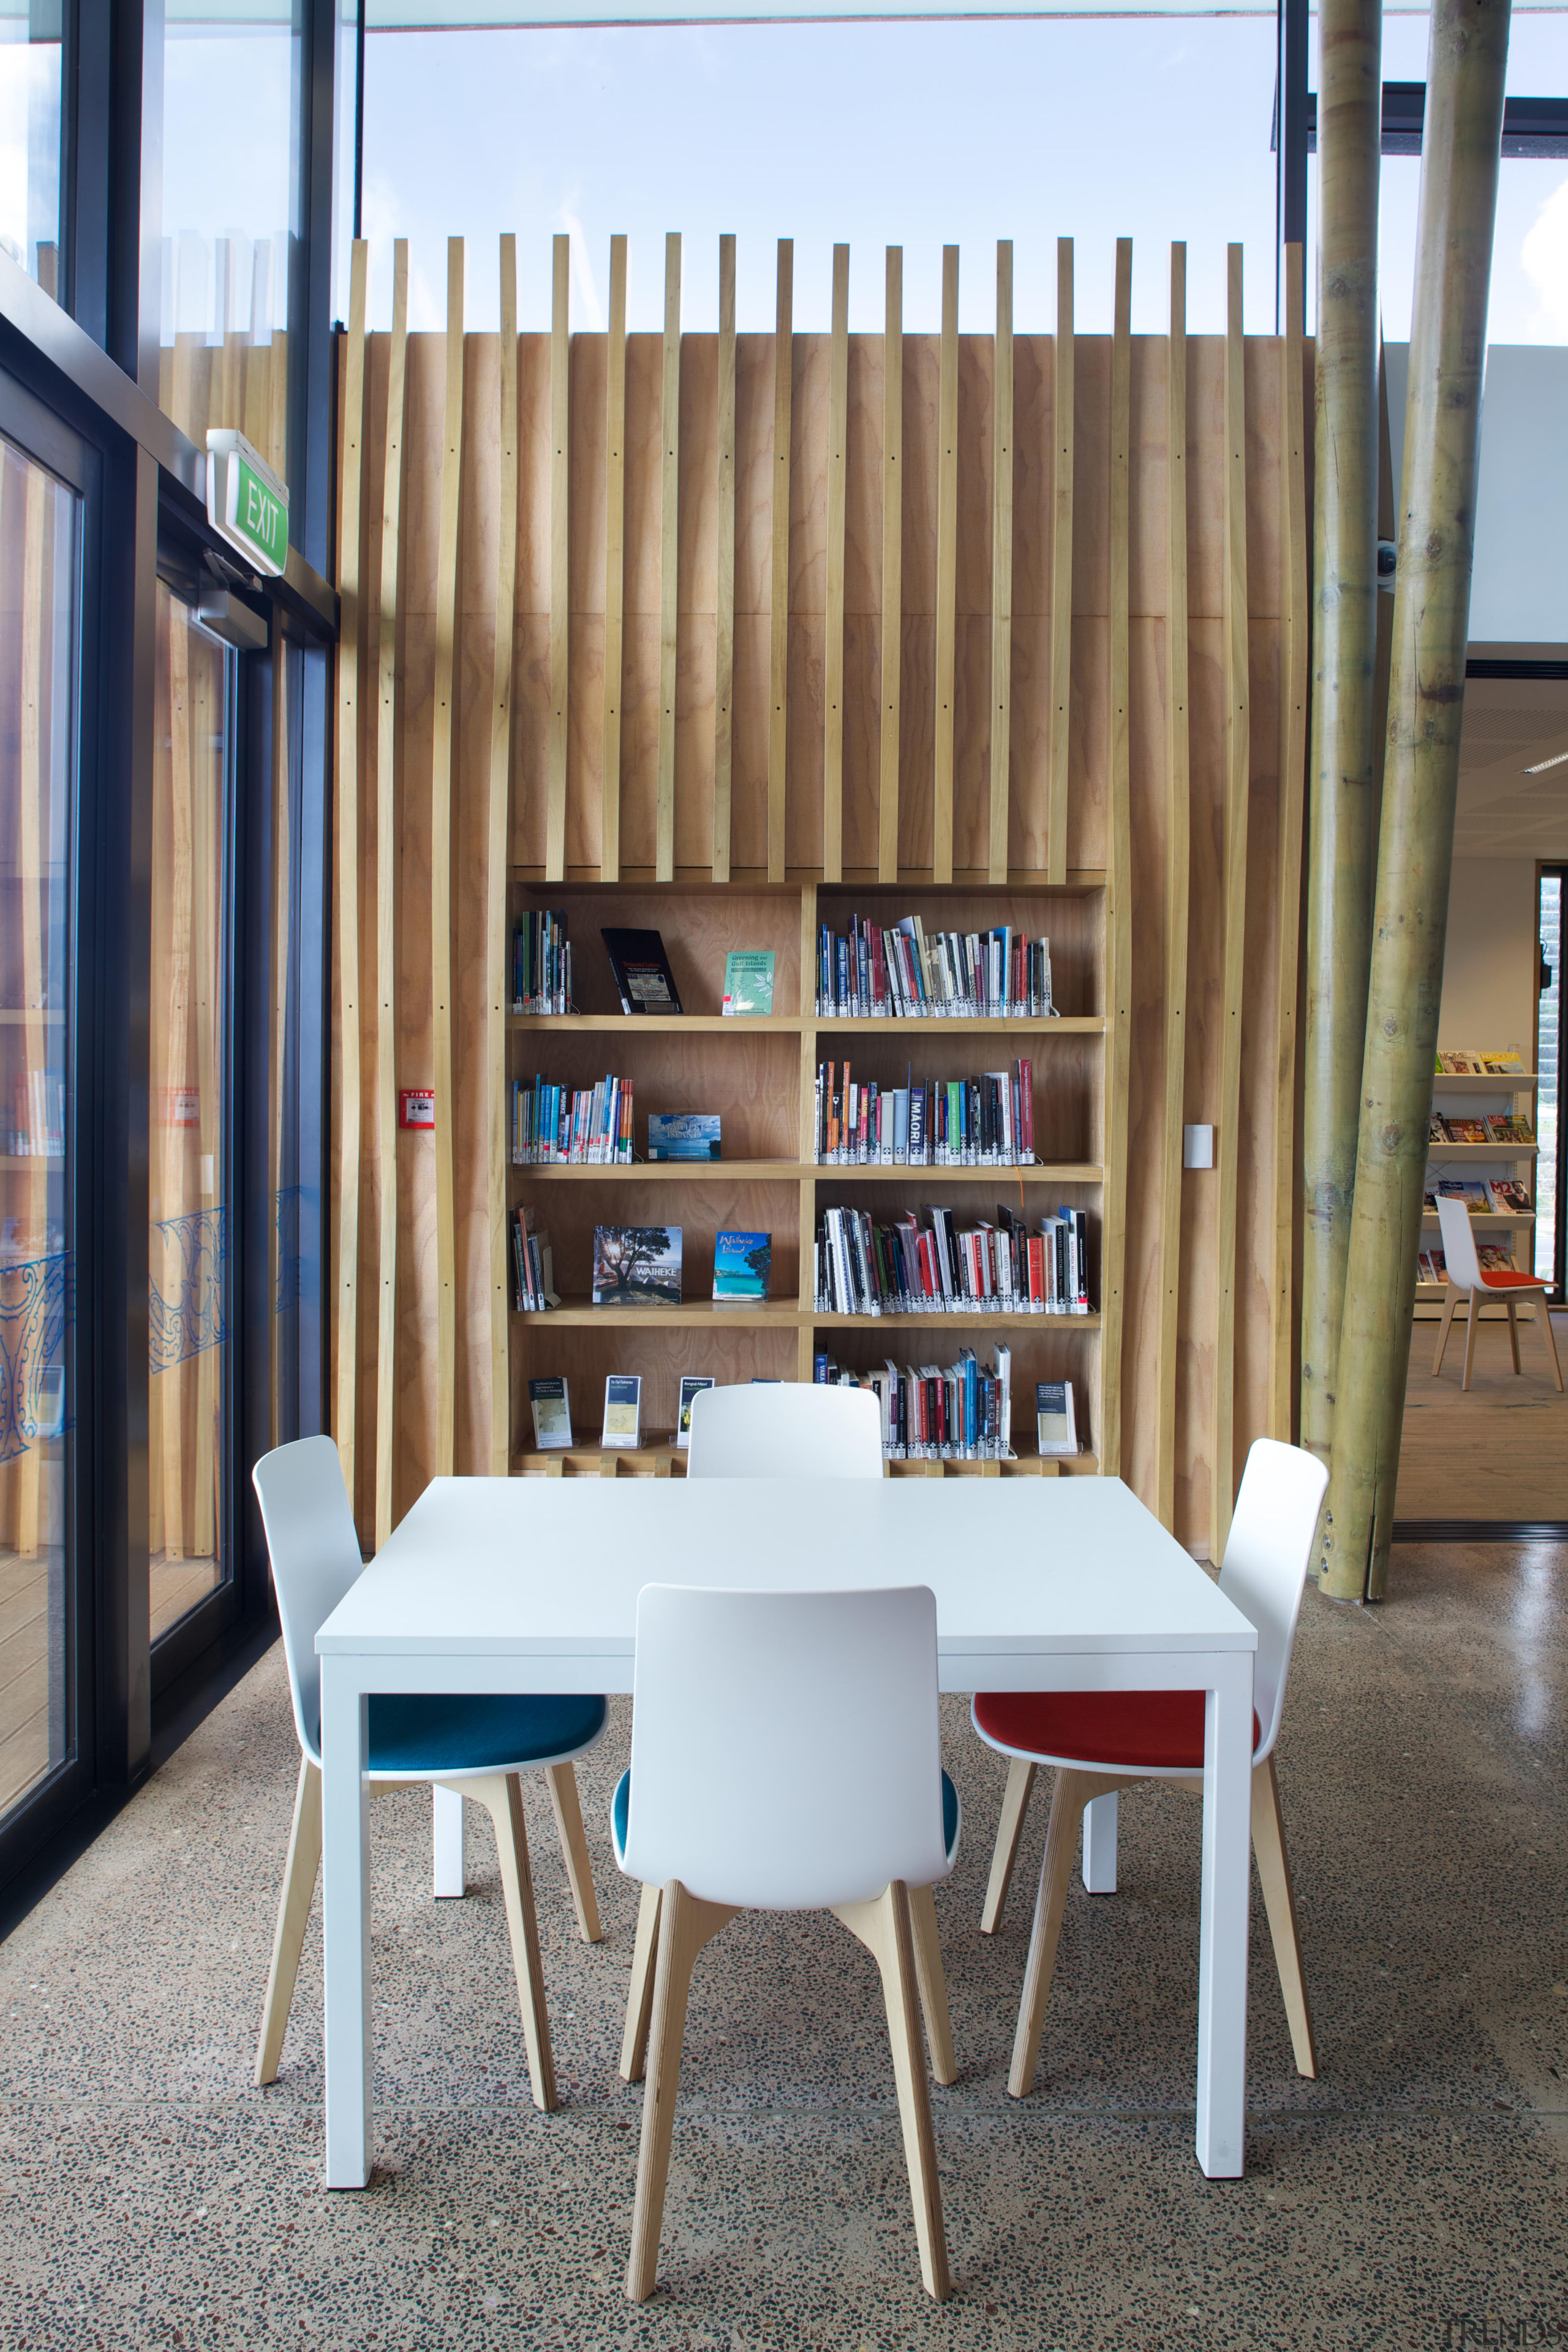 The Waiheke library provides a variety of seating chair, furniture, interior design, shelving, table, gray